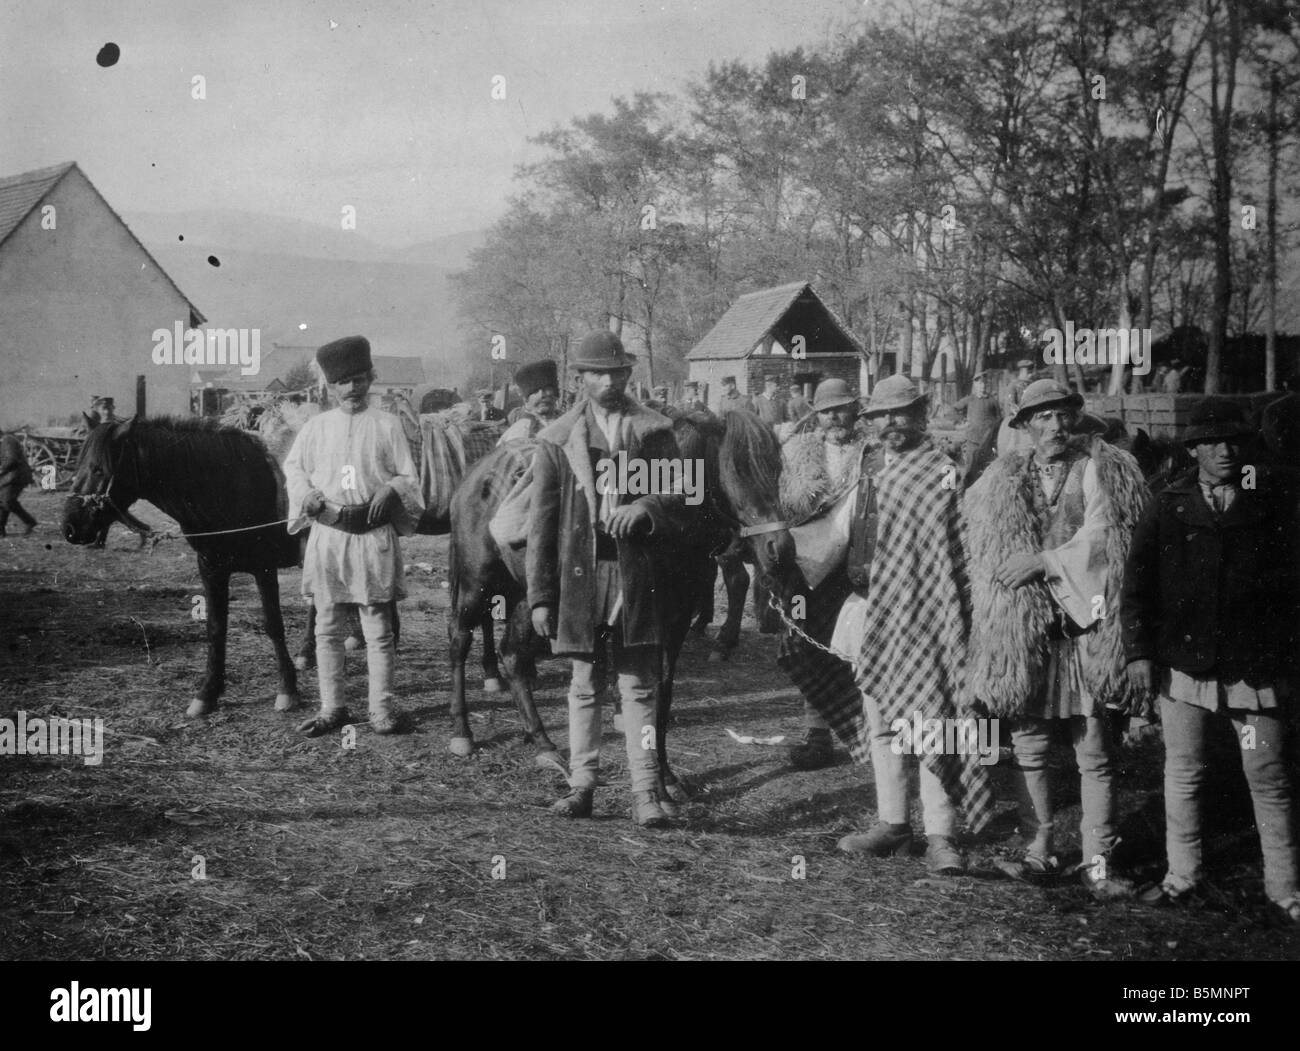 2 V60 U1 1916 E Hungarians with horses deployed for war Ethnology Hungary Southern Hungarian farmers with their - Stock Image